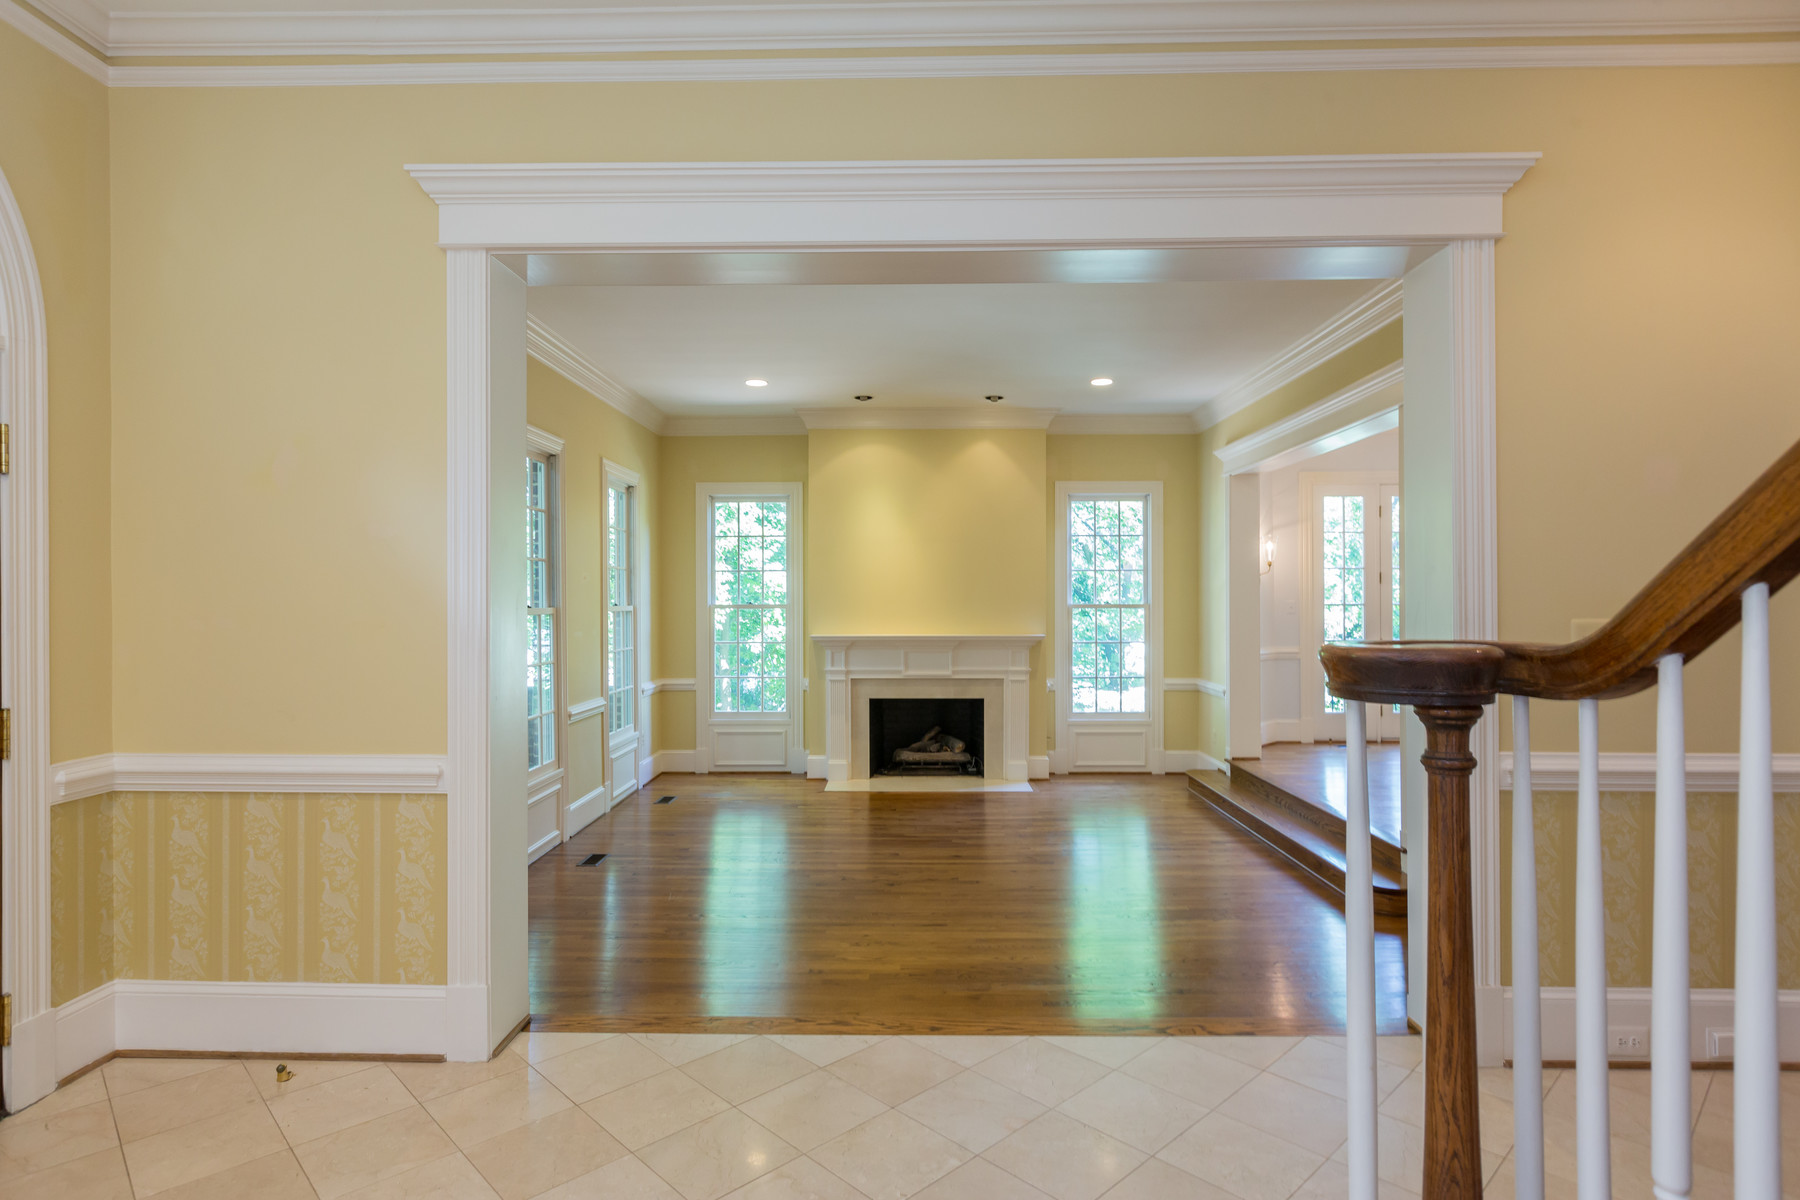 Additional photo for property listing at 1209 Stuart Robeson Drive, Mclean  McLean, Virginia 22101 Stati Uniti